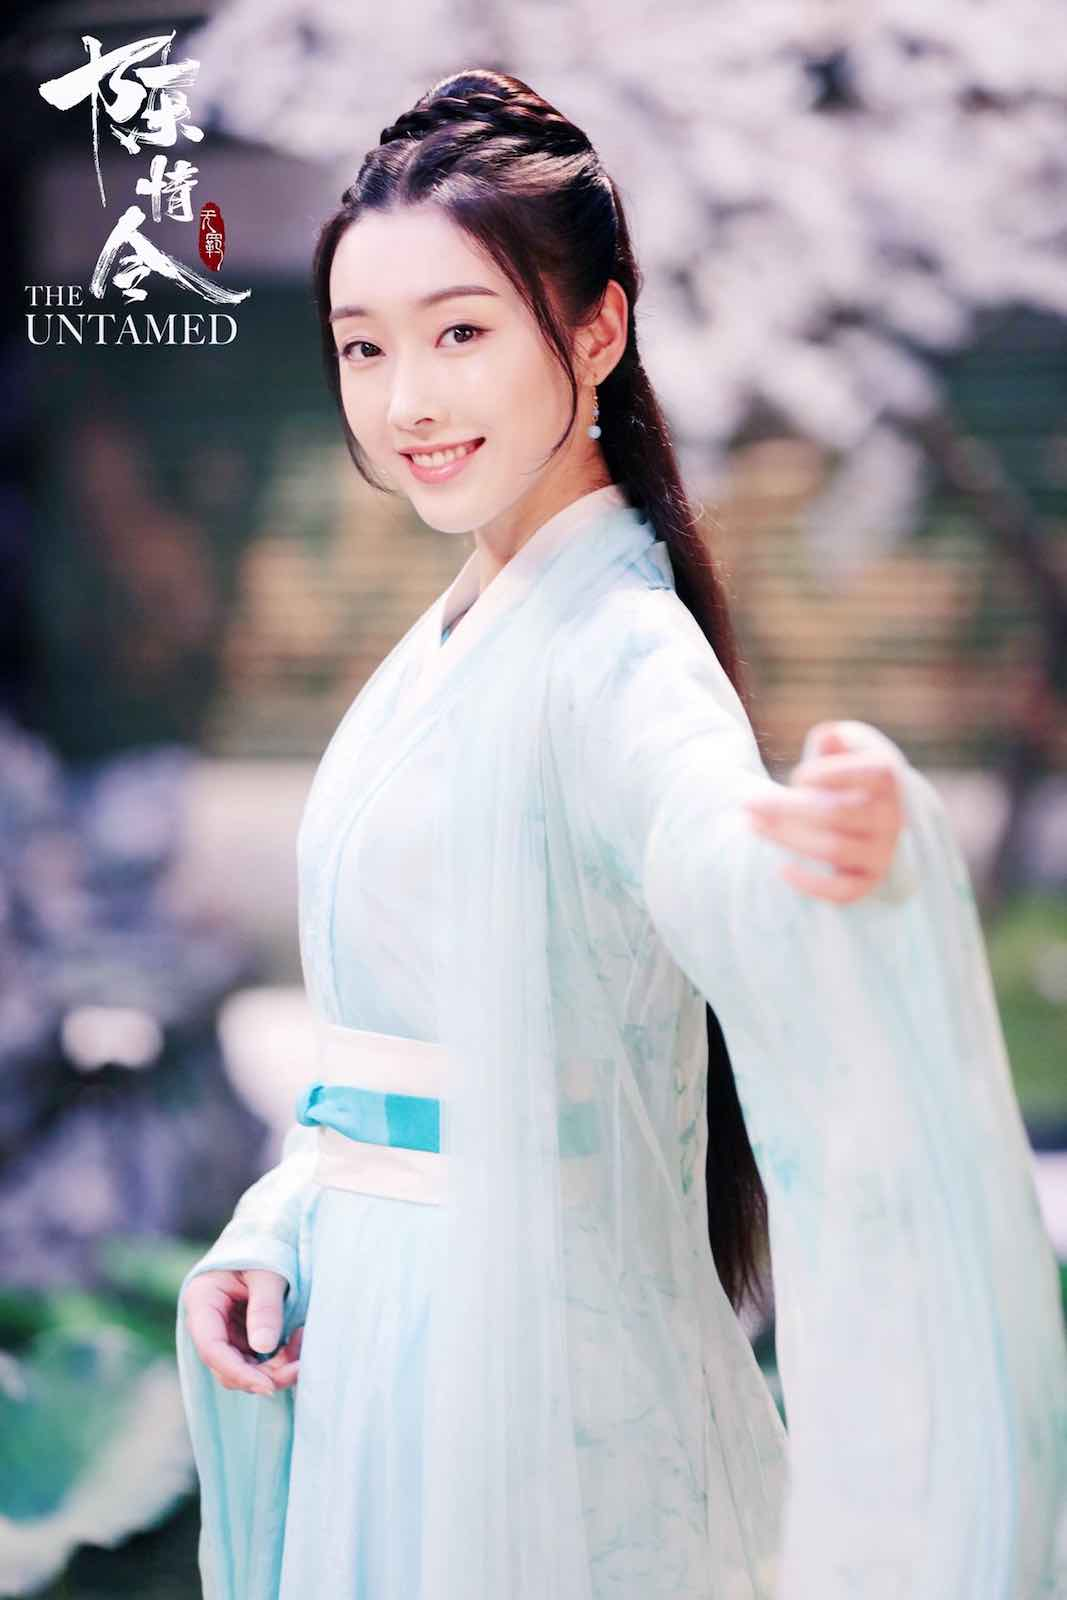 The Untamed: Jiang Yanli